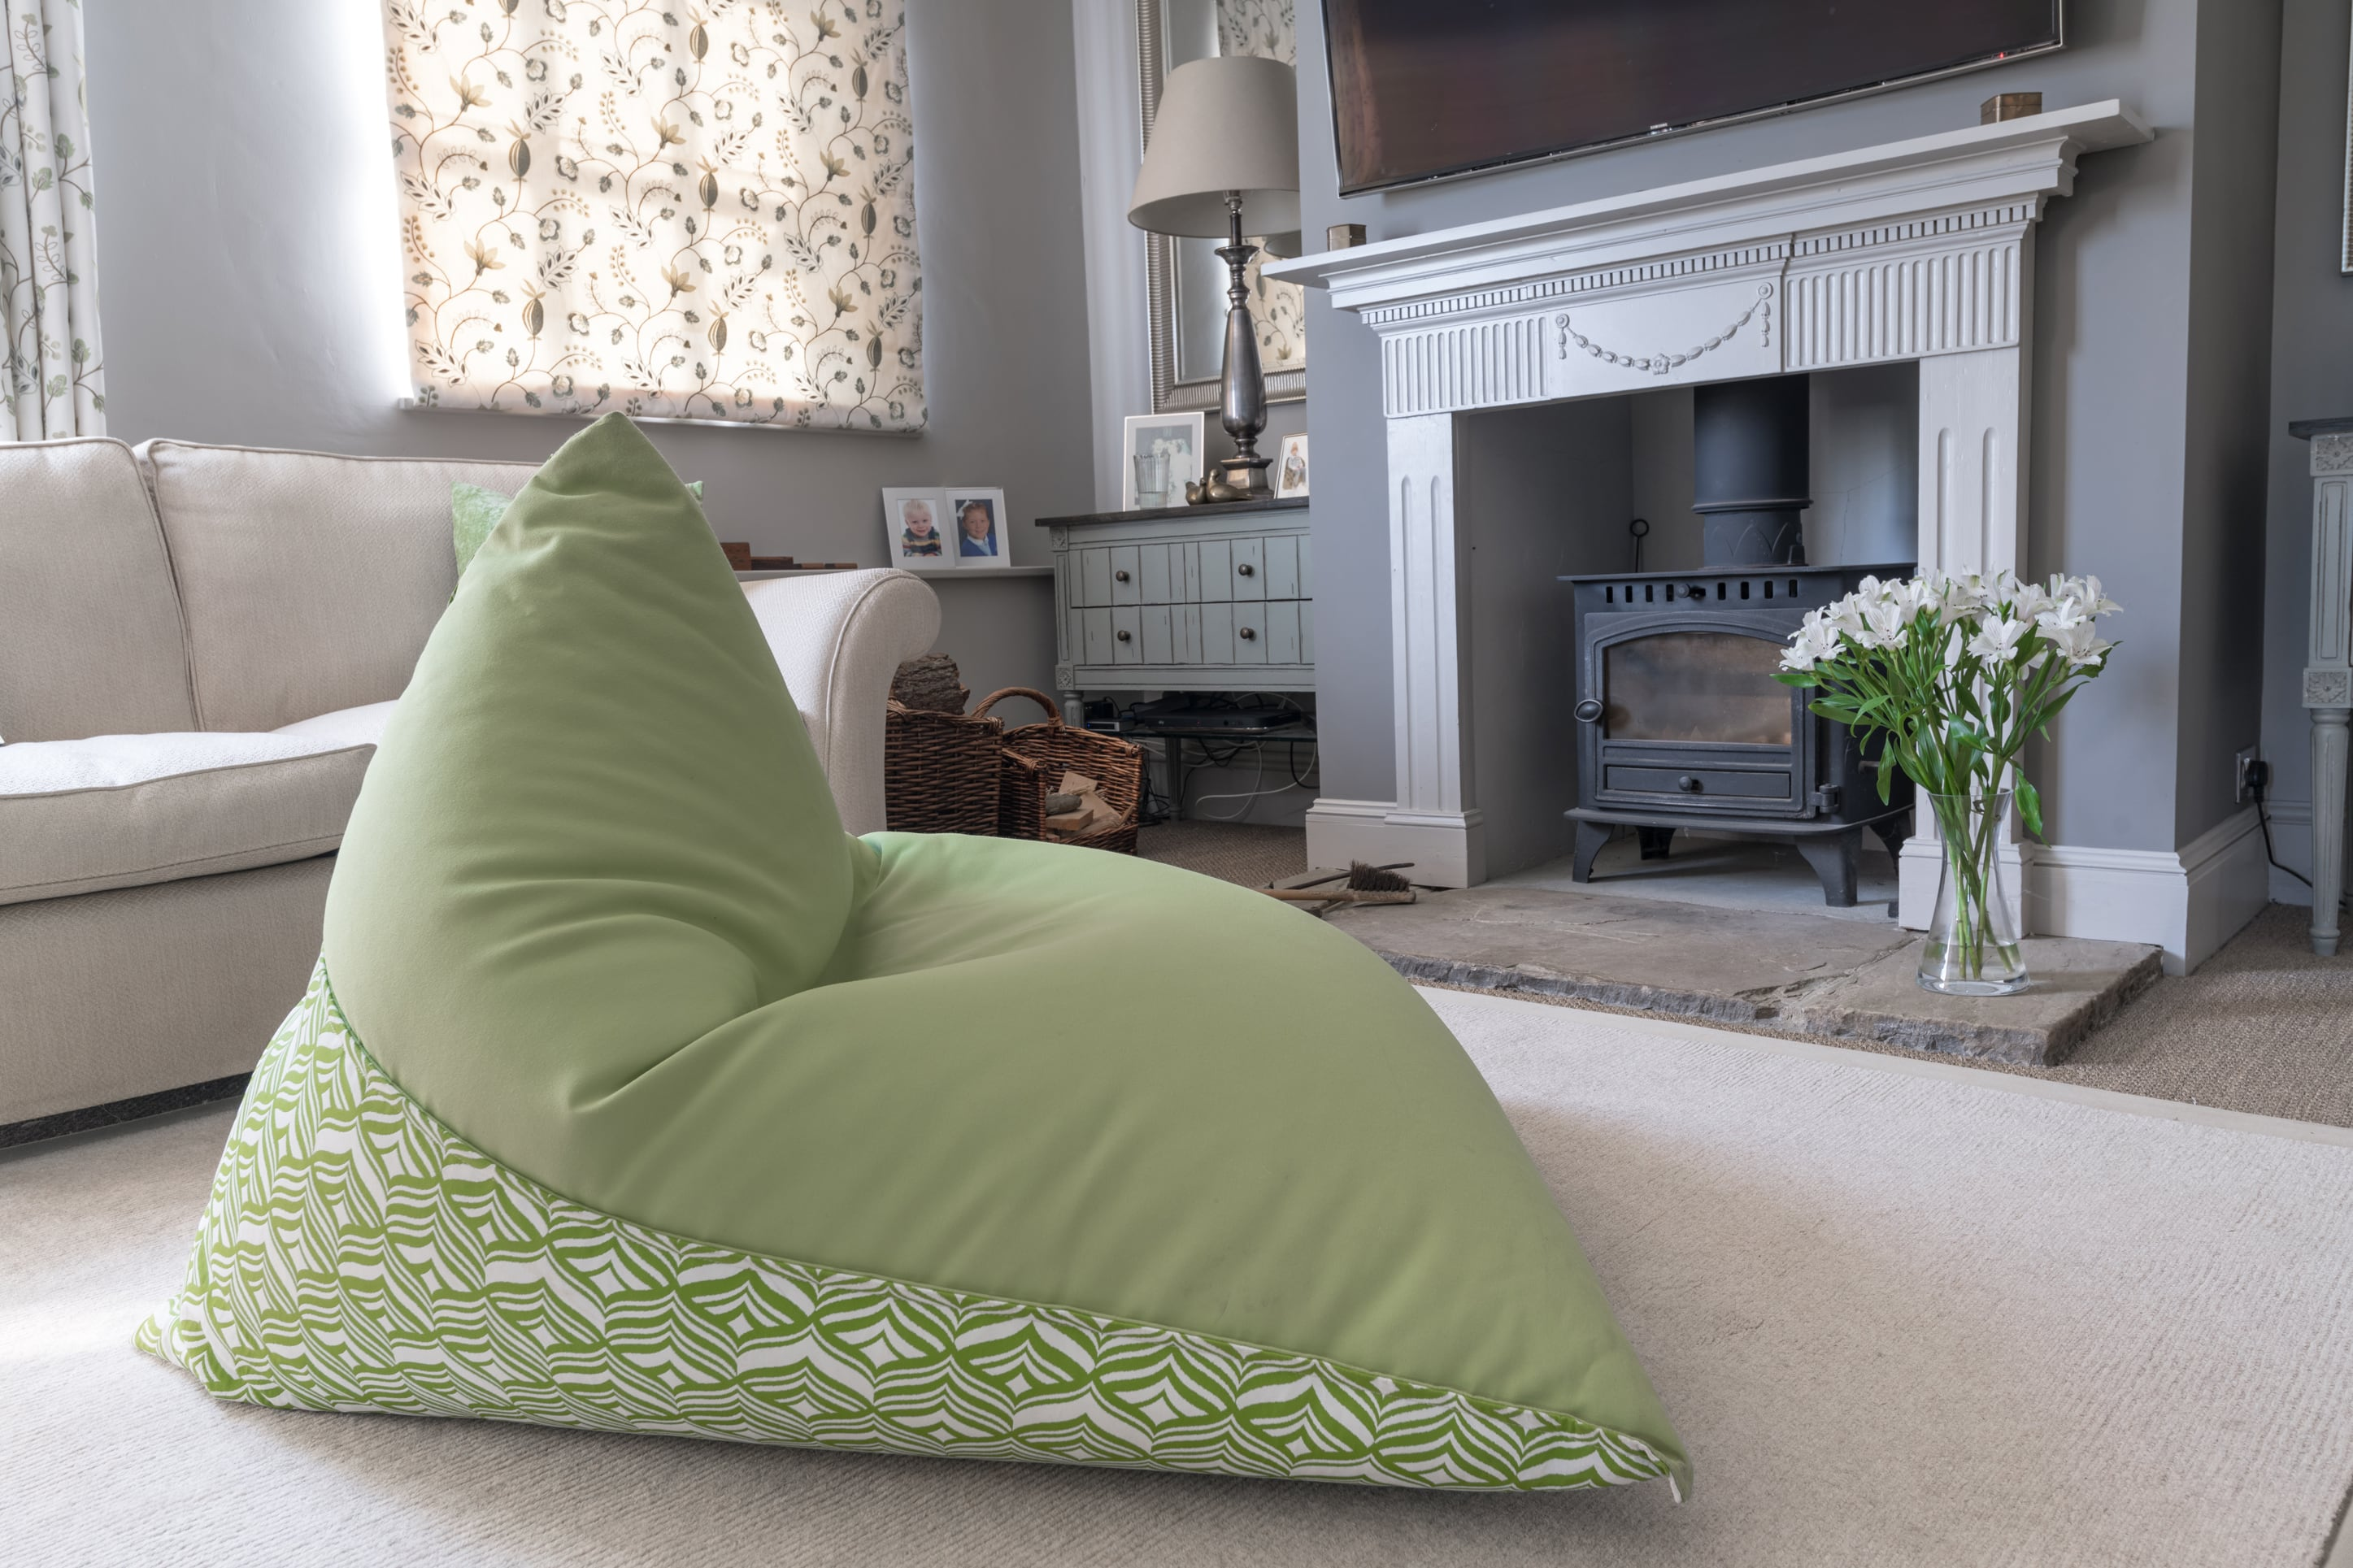 Armadillo Sun bean bag chair in green and white tulip design indoors by fireplace